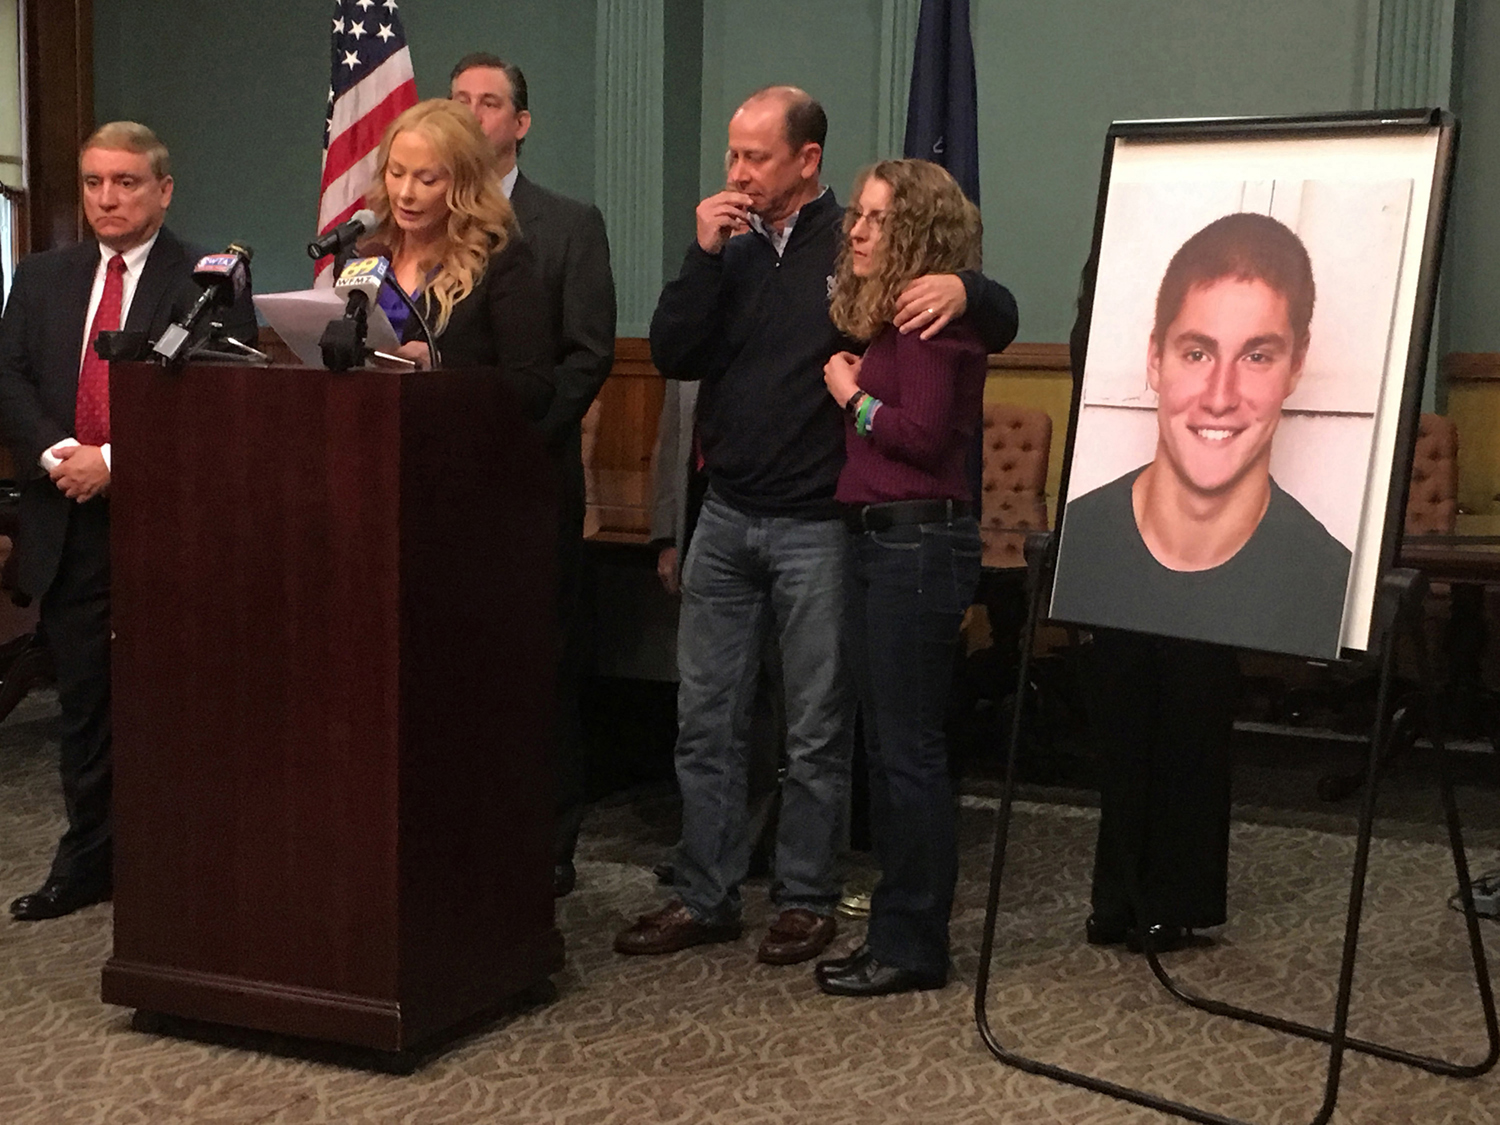 Stacy Parks Miller, former Centre County district attorney, with James and Evelyn Piazza, parents of Timothy Piazza, 19, of Readington Township, New Jersey, during a news conference at the Bellefonte courthouse.